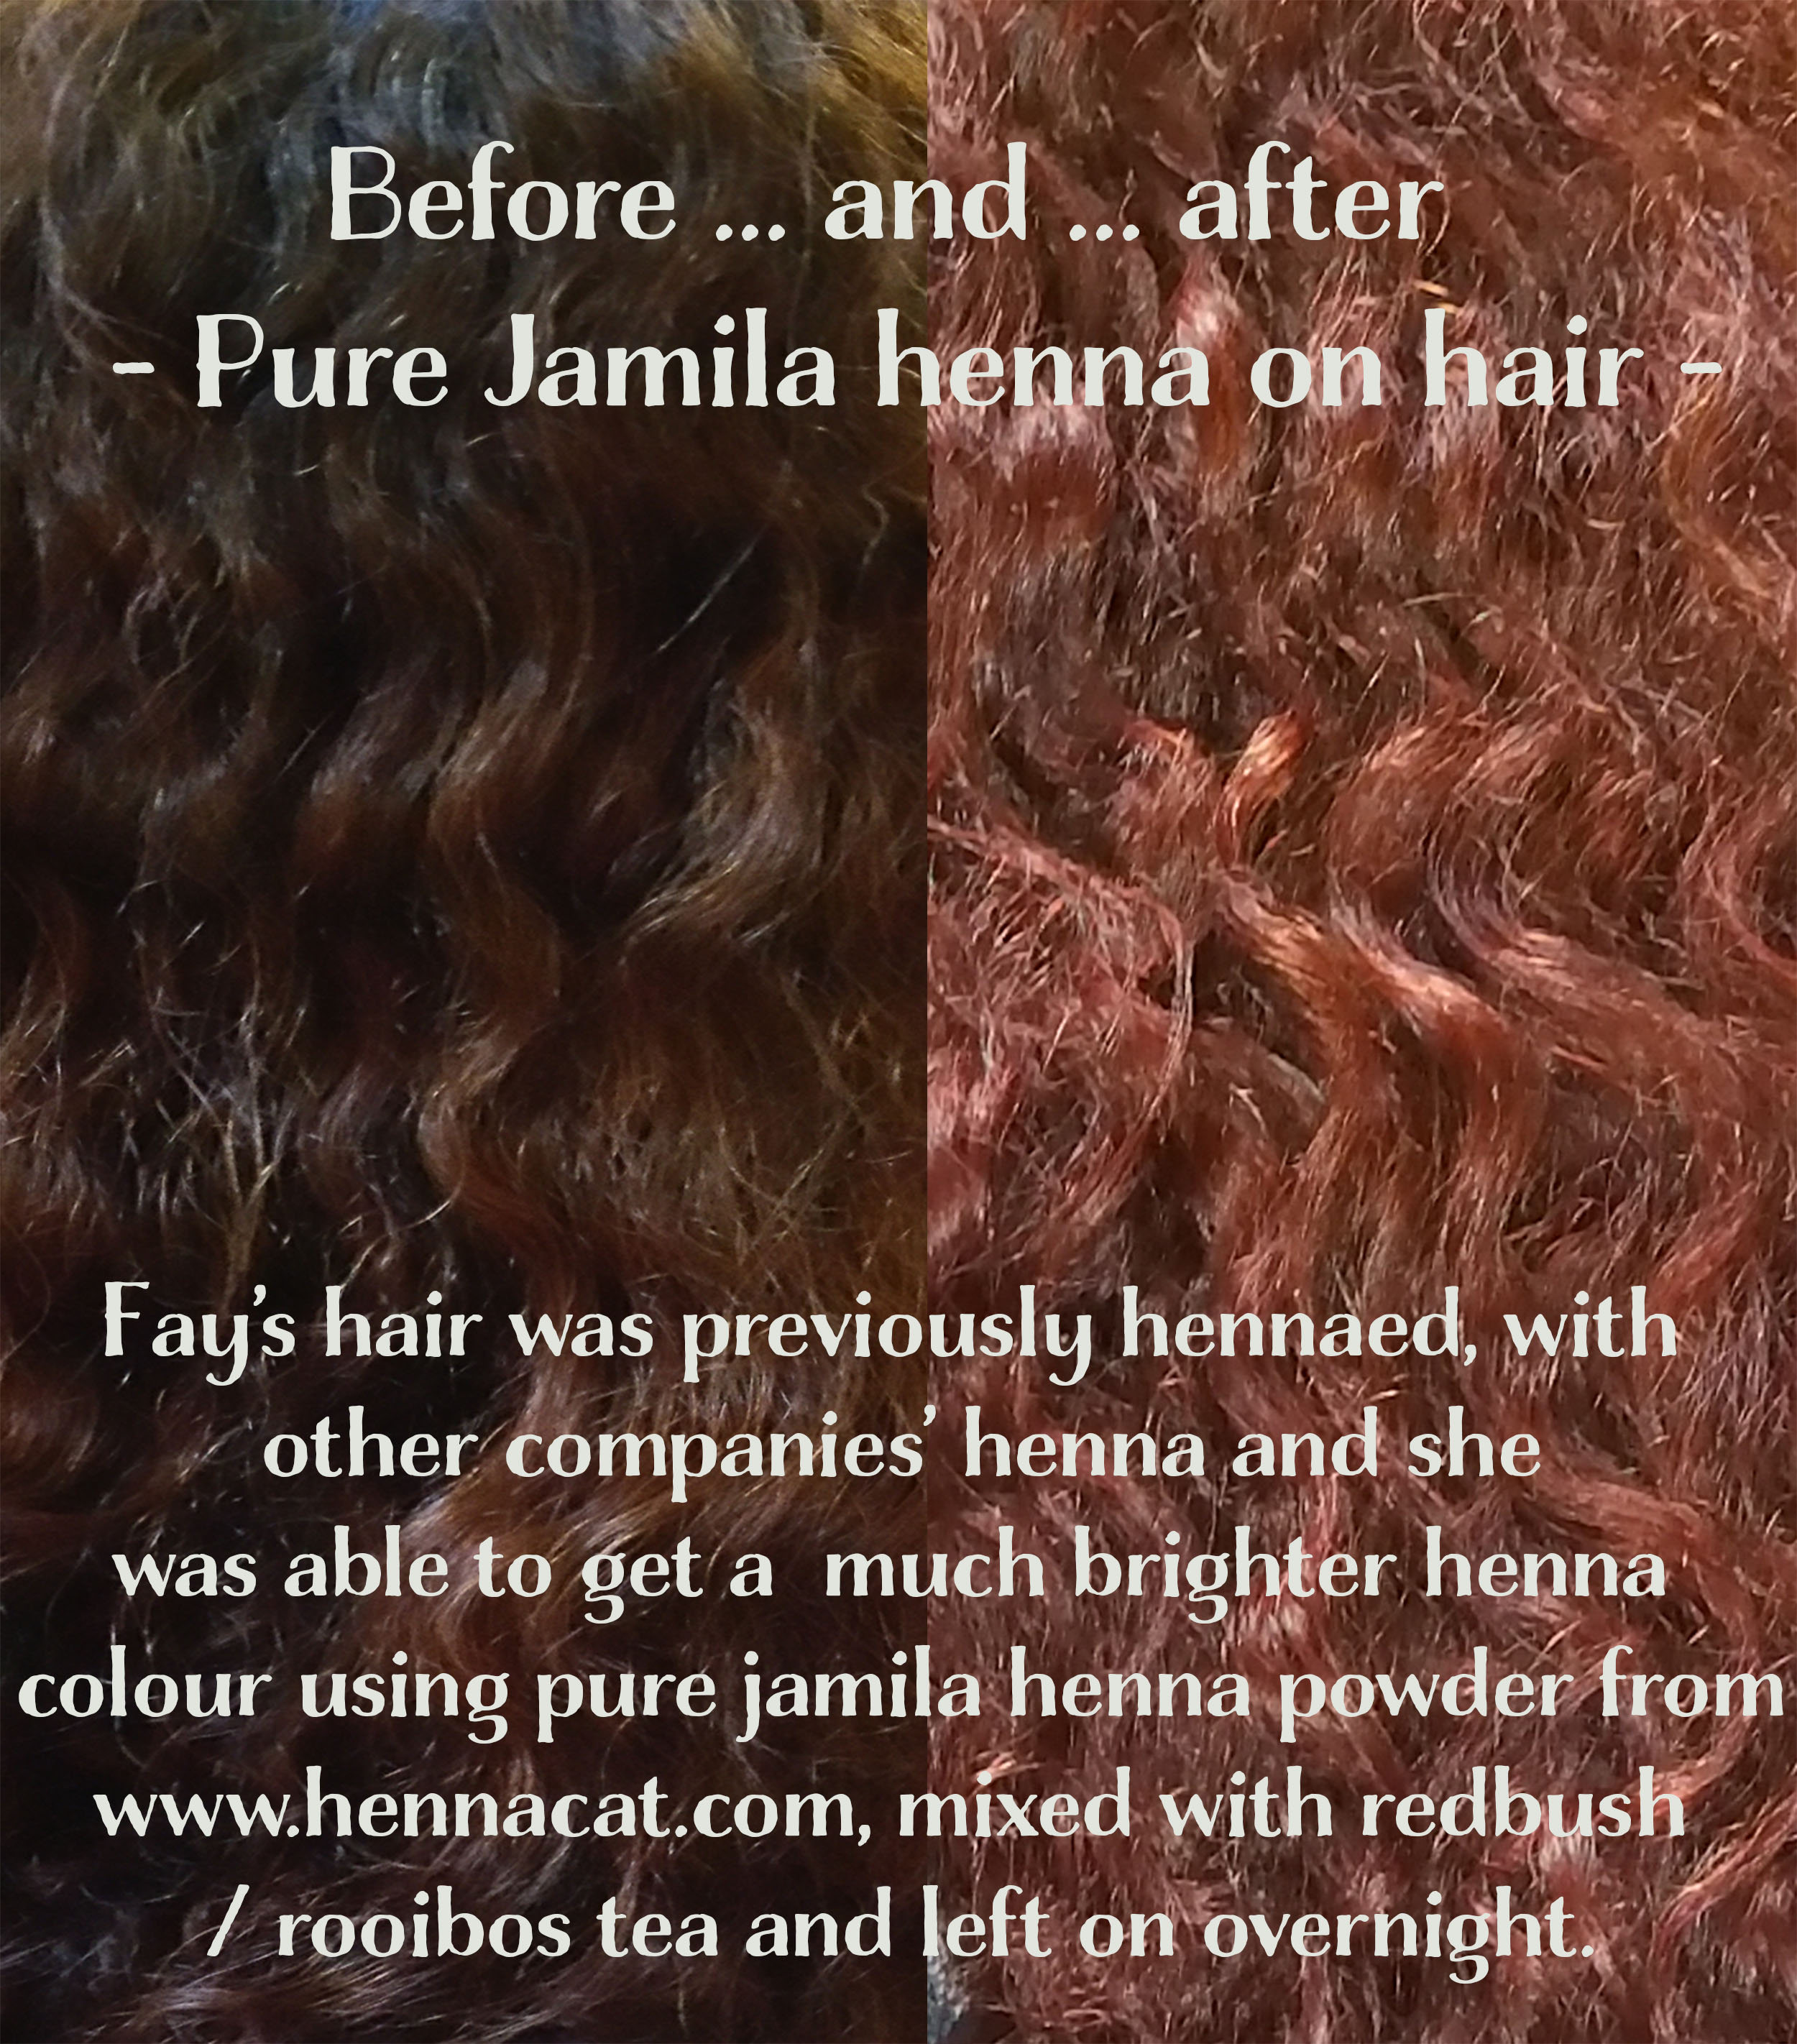 Mehndi Uses For Hair : Henna for hair benefits of on afro hennacat